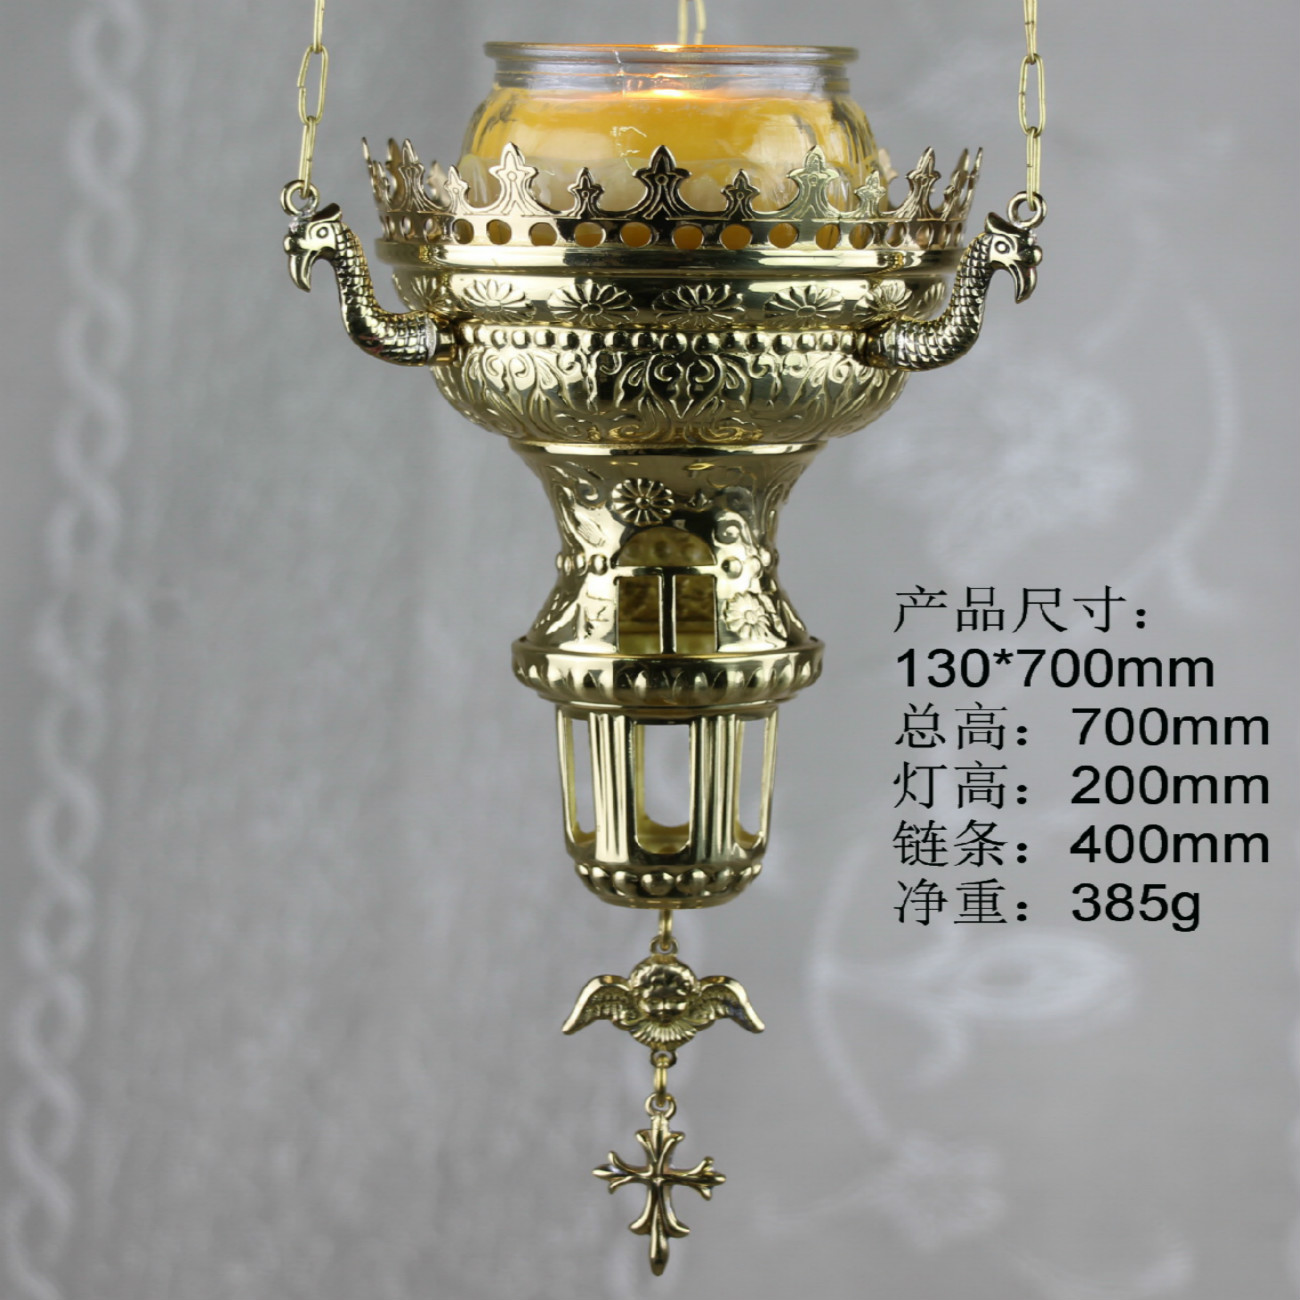 Good Church Copper Oil Lamp, Suitable For Family Or Churches, Great Holy Things Candlestick CandleHolder Candler Lantern Burner